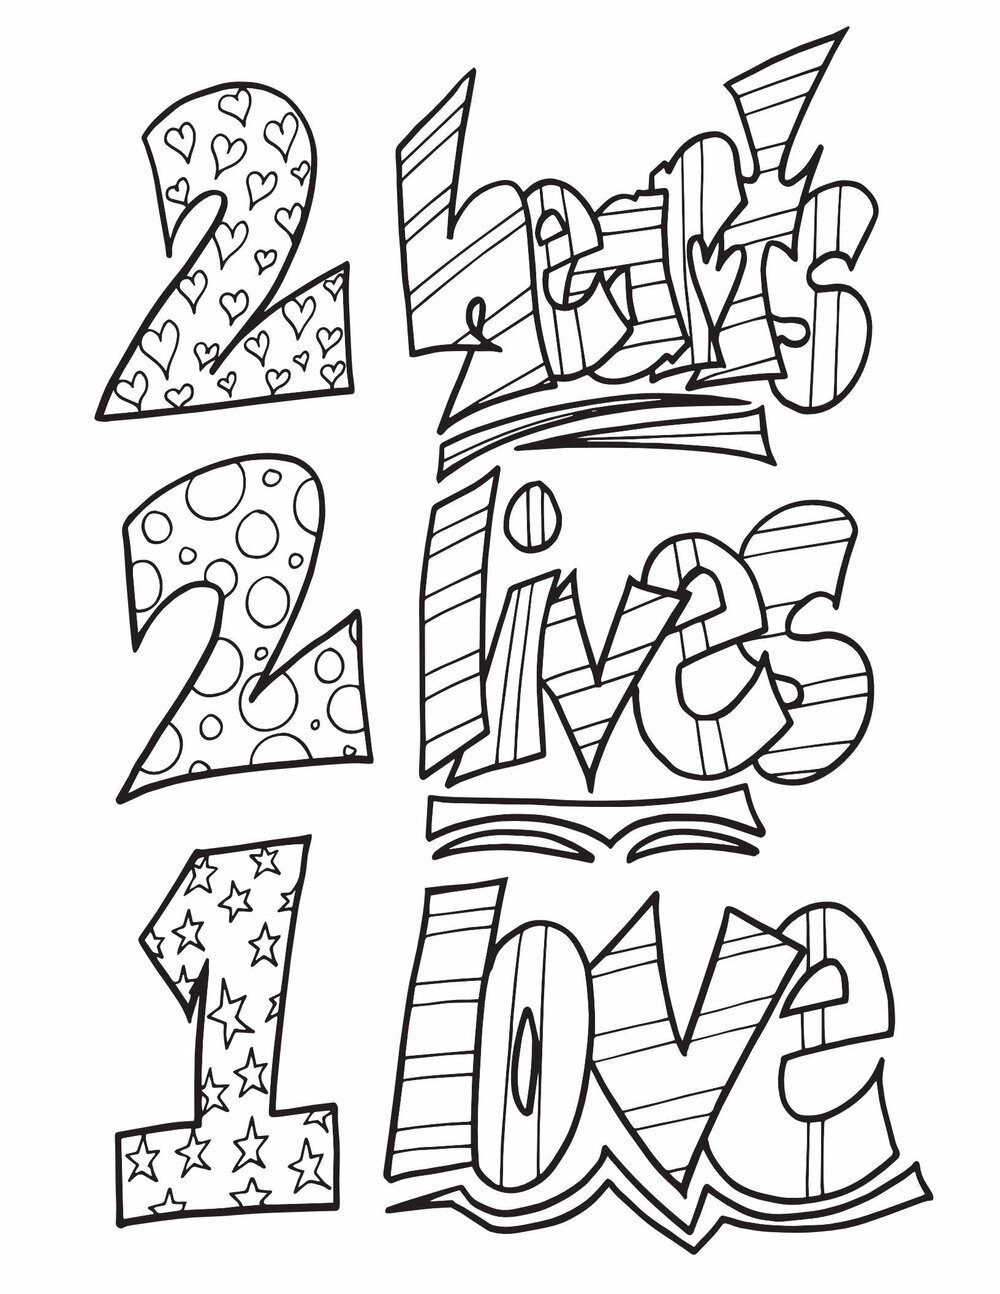 2 Hearts 2 Lives 1 Love Free Printable Coloring Page Stevie Doodles Free Printable Coloring Pages